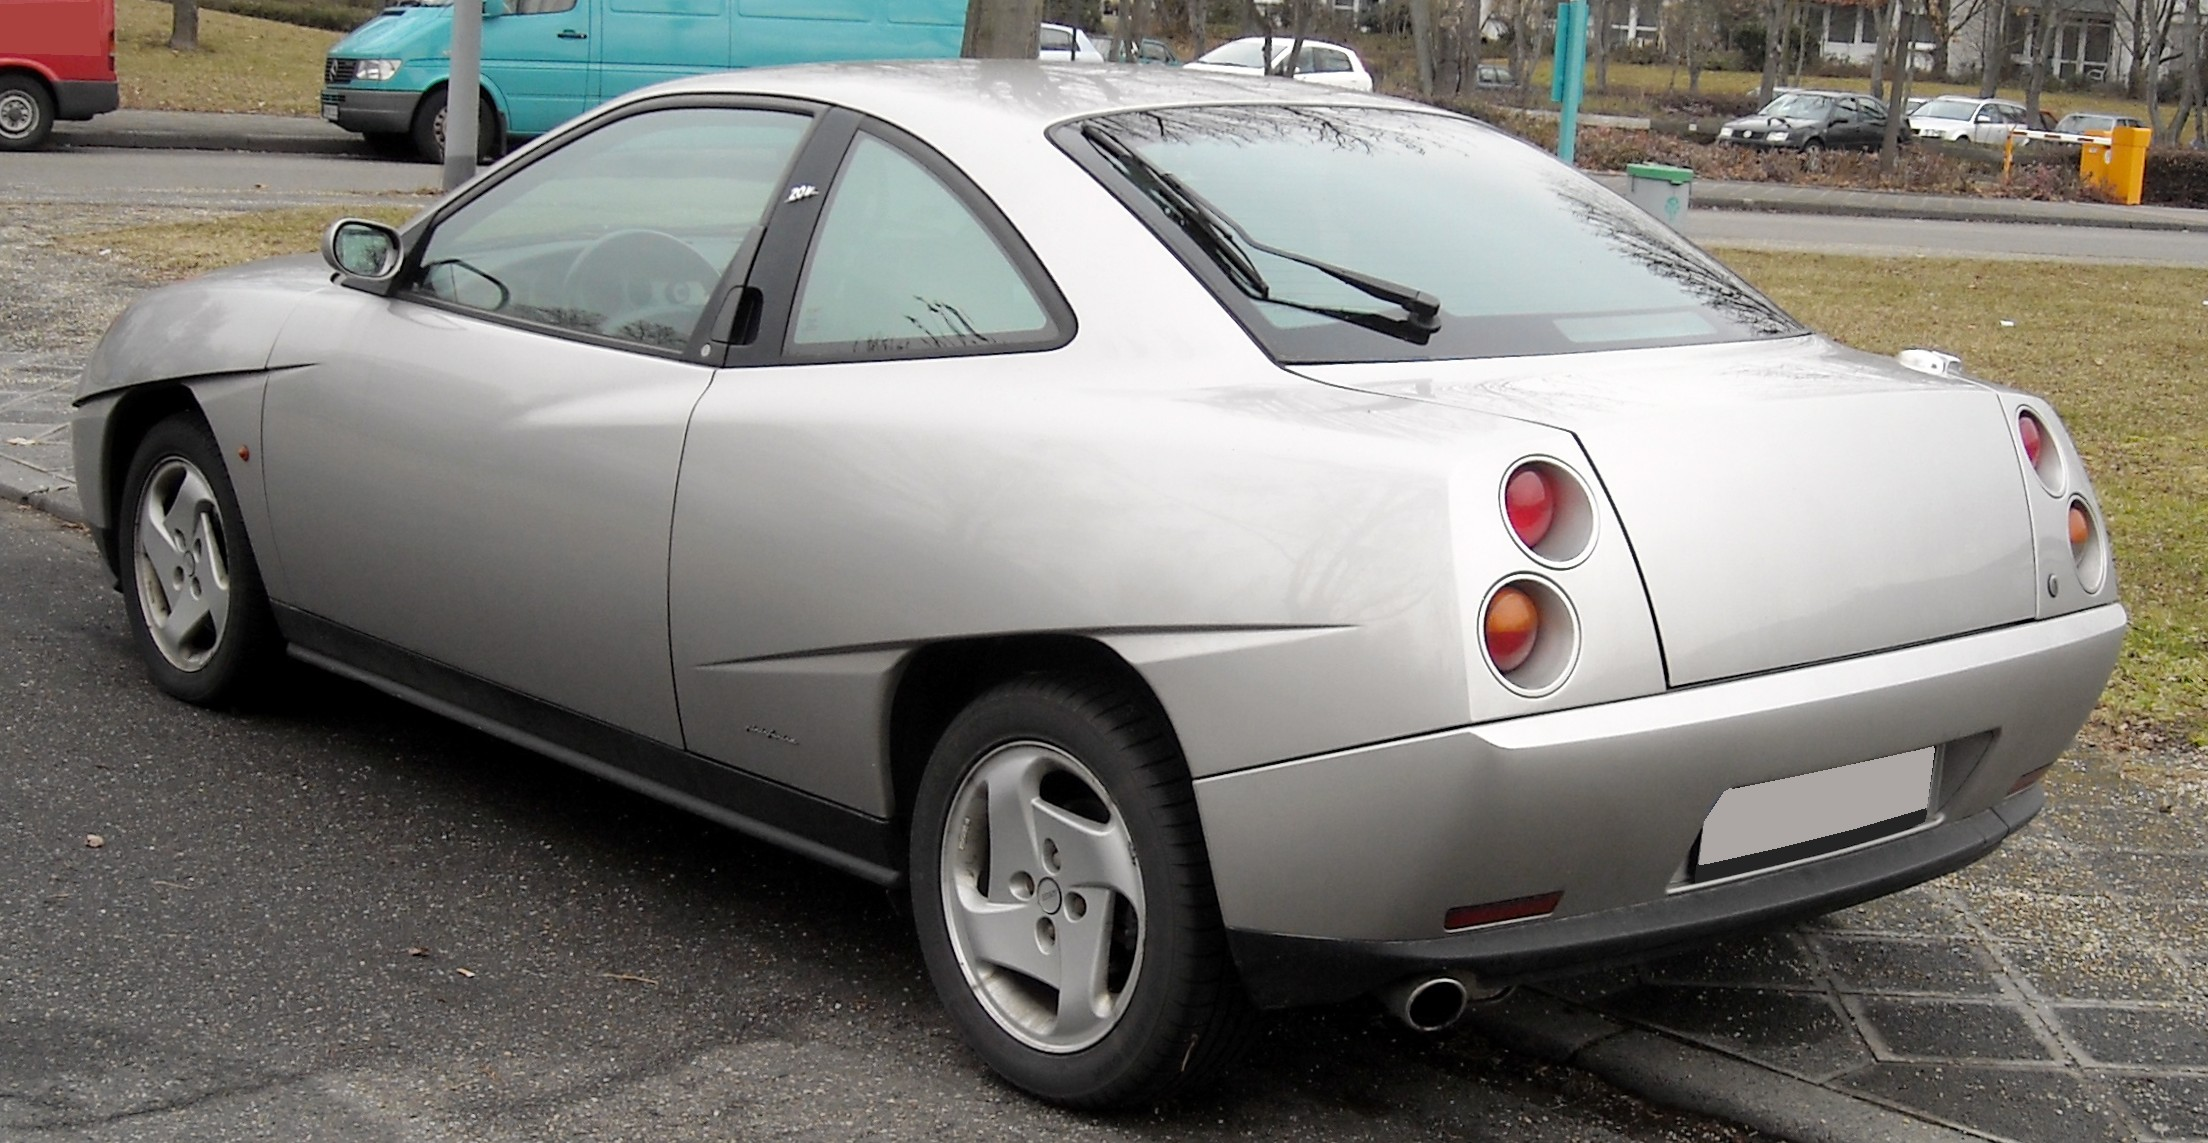 Fiat Coupe File Fiat Coupé Rear 20090227 Jpg Wikimedia Commons